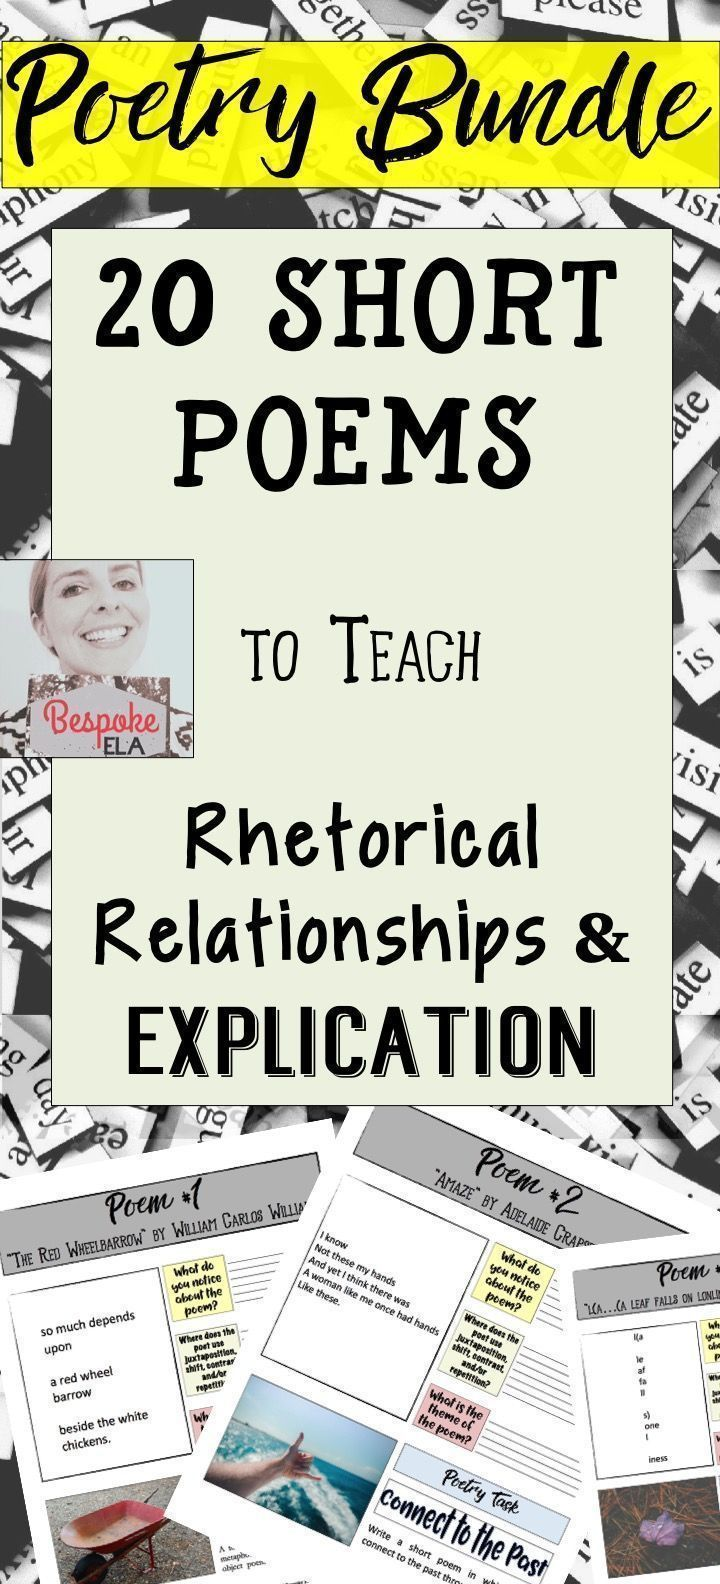 This product by Bespoke ELA contains 20 short poems to analyze for the four, basic rhetorical relationships: juxtaposition, contrast, shift, and repetition.  Excellent for English classes in middle school and high school as mentor texts & mini-lessons.